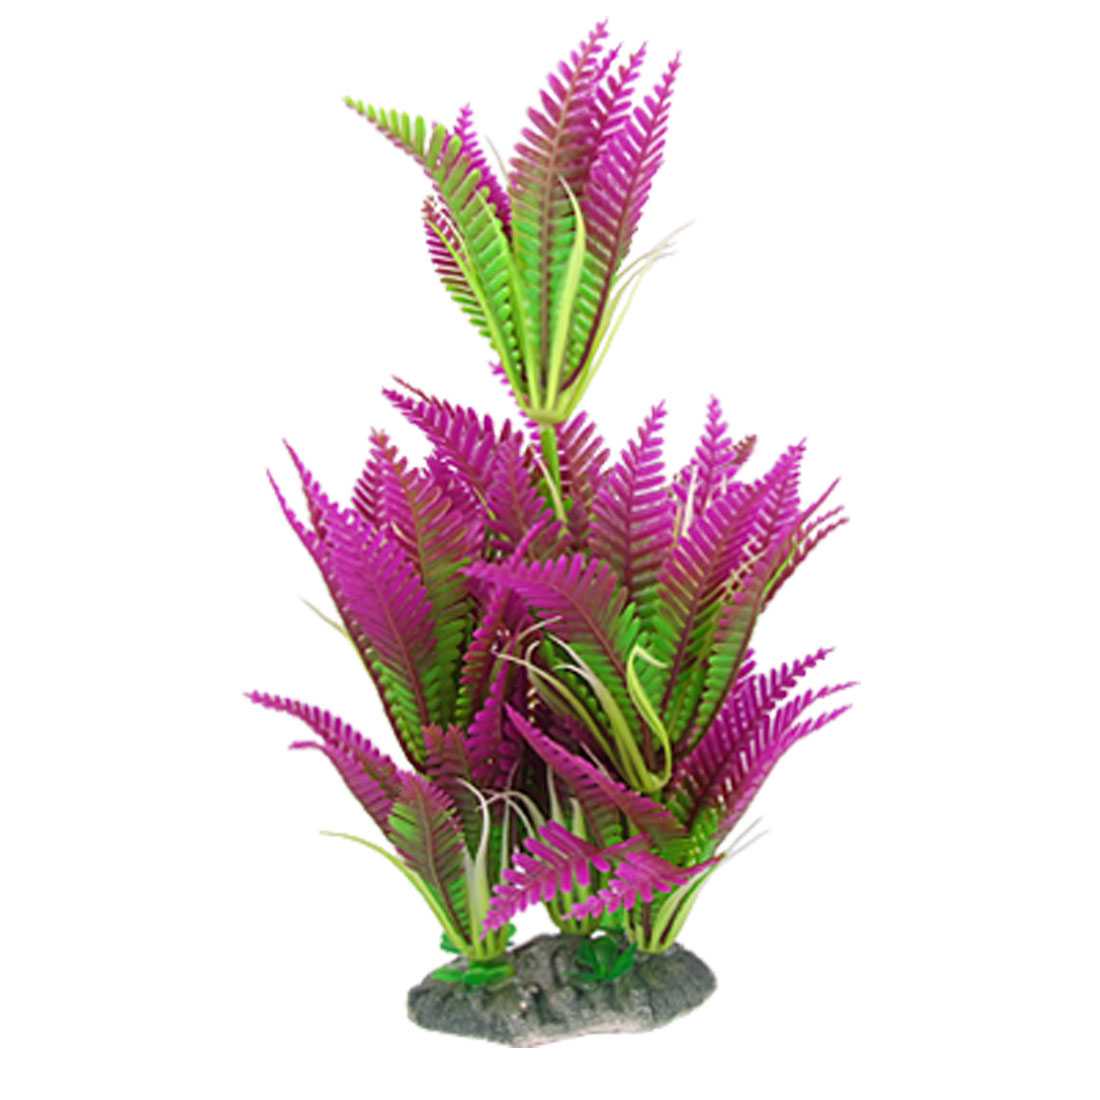 Aquarium Tank 25cm Long Ceramic Base Purple Green Plastic Water Plant